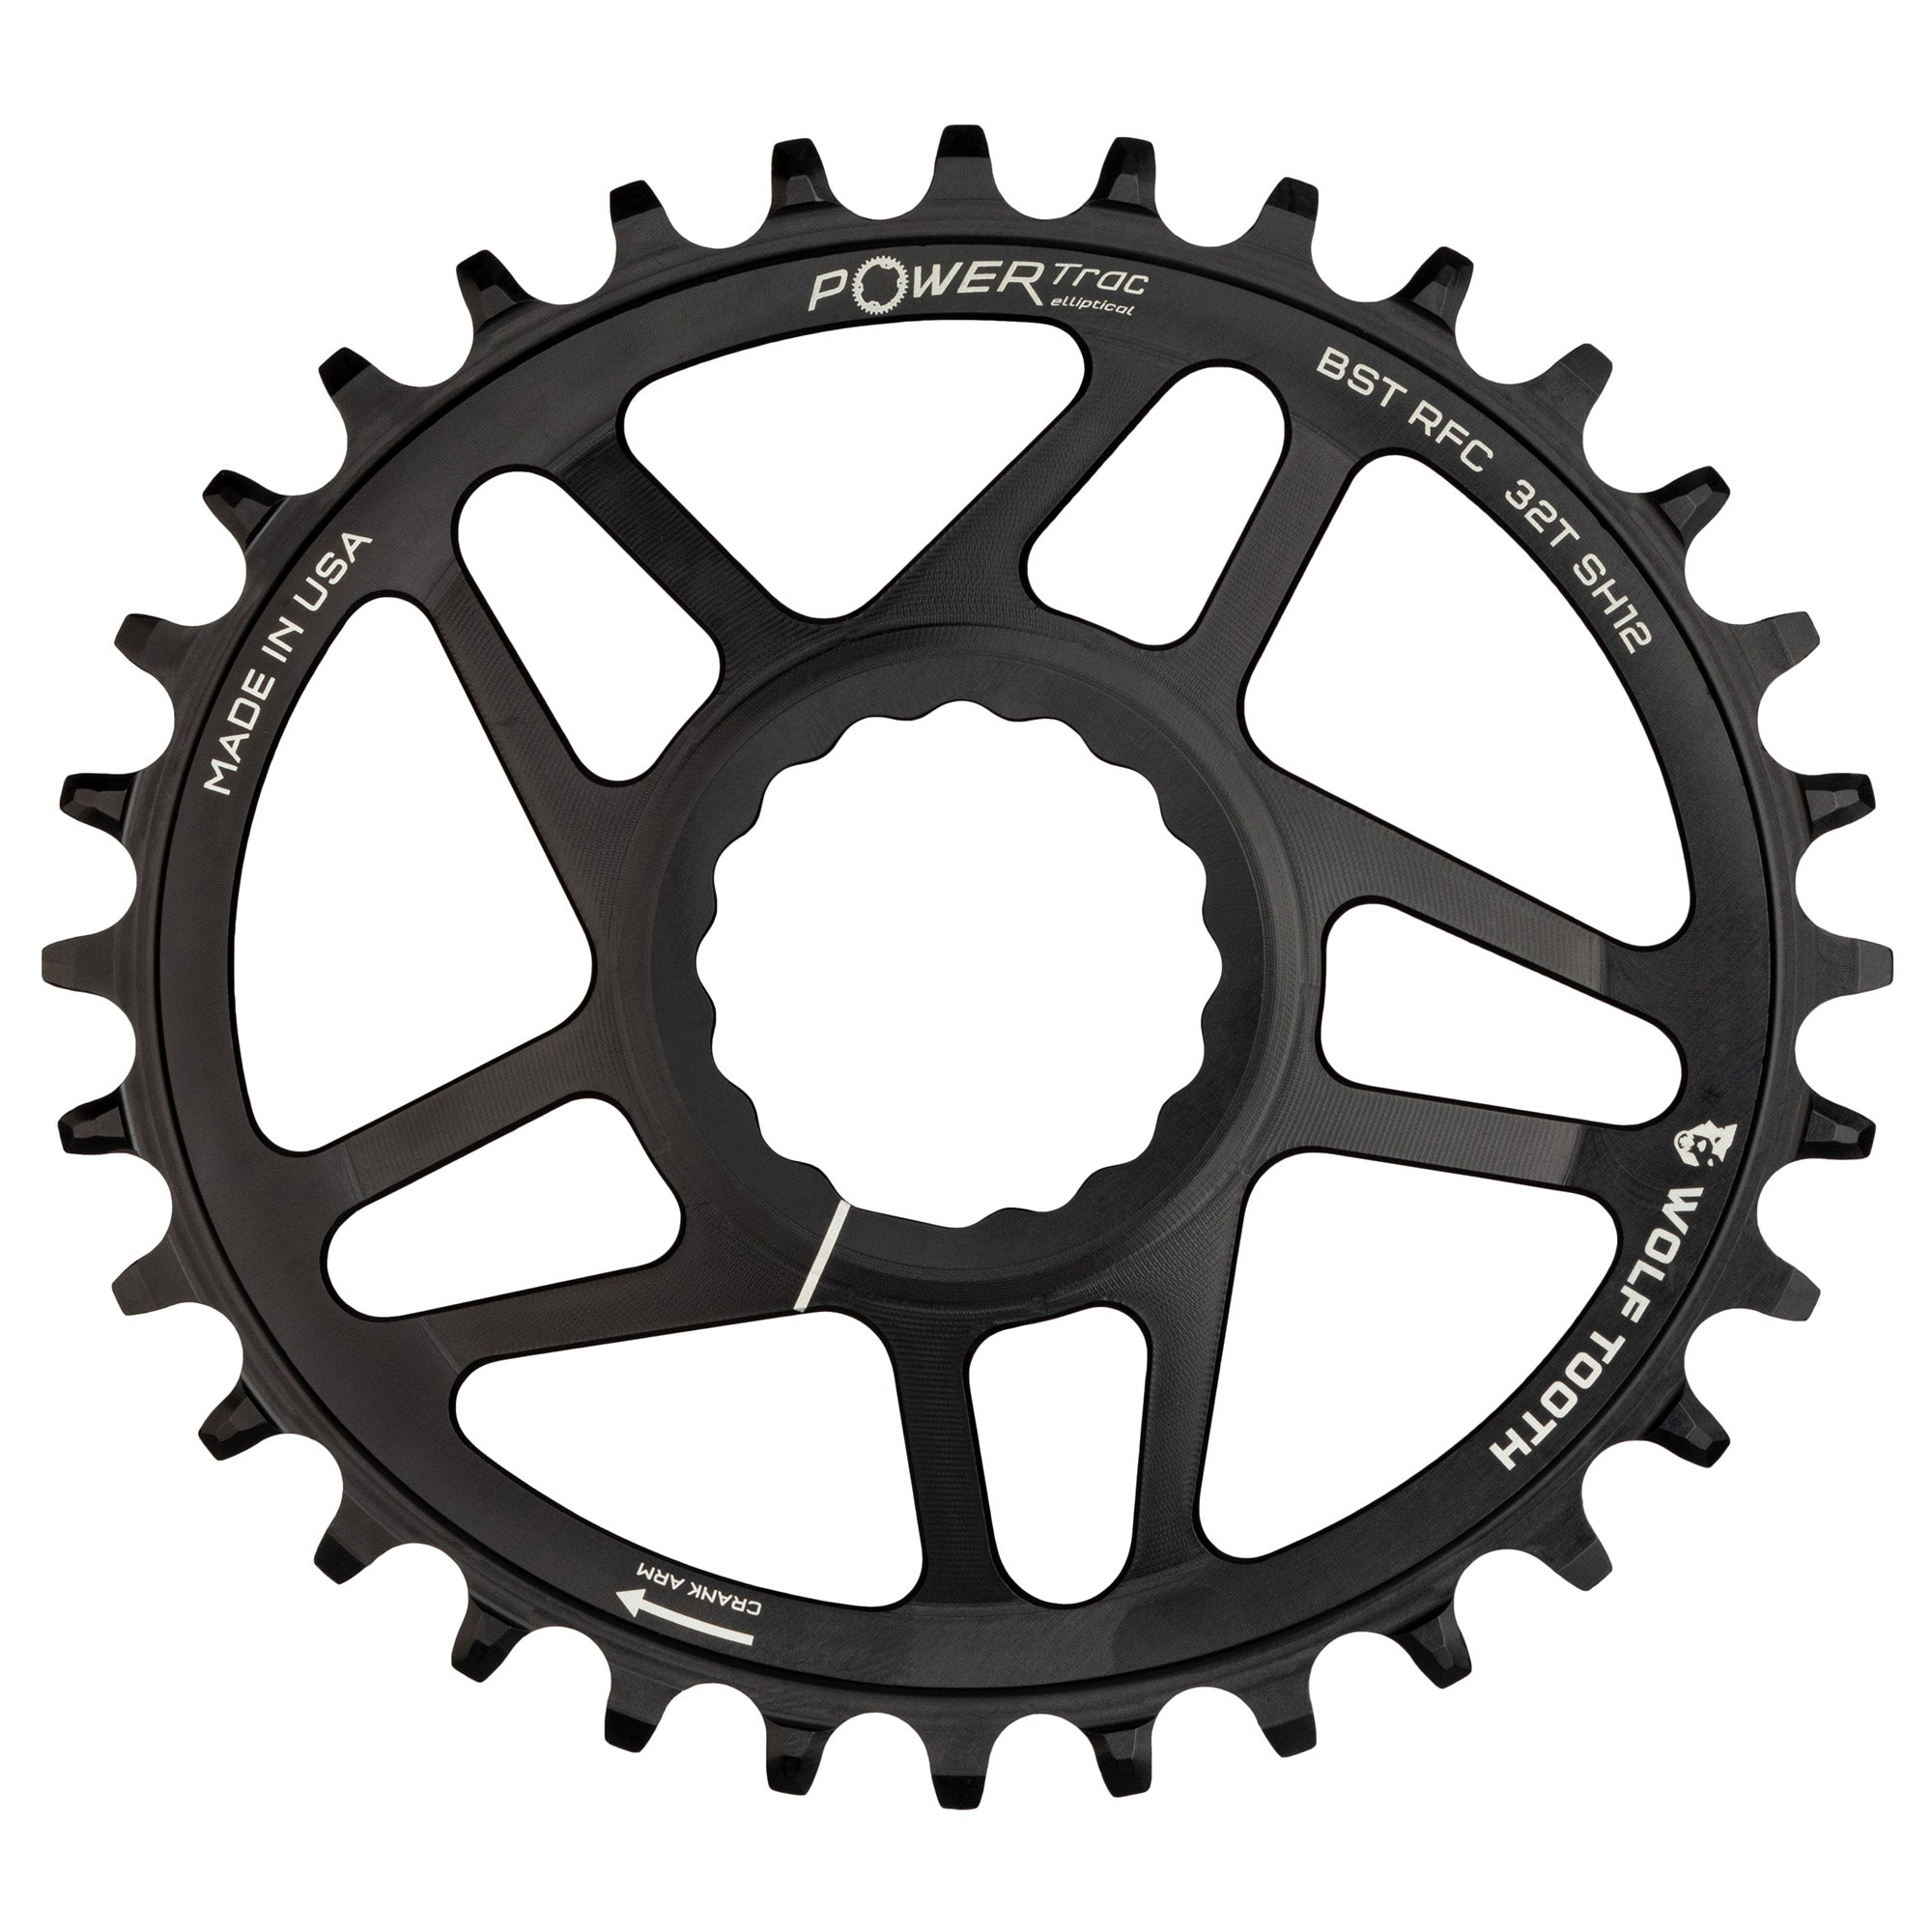 Wolf Tooth Direct-Mount Drop-Stop Chainring for RaceFace Cinch 32t